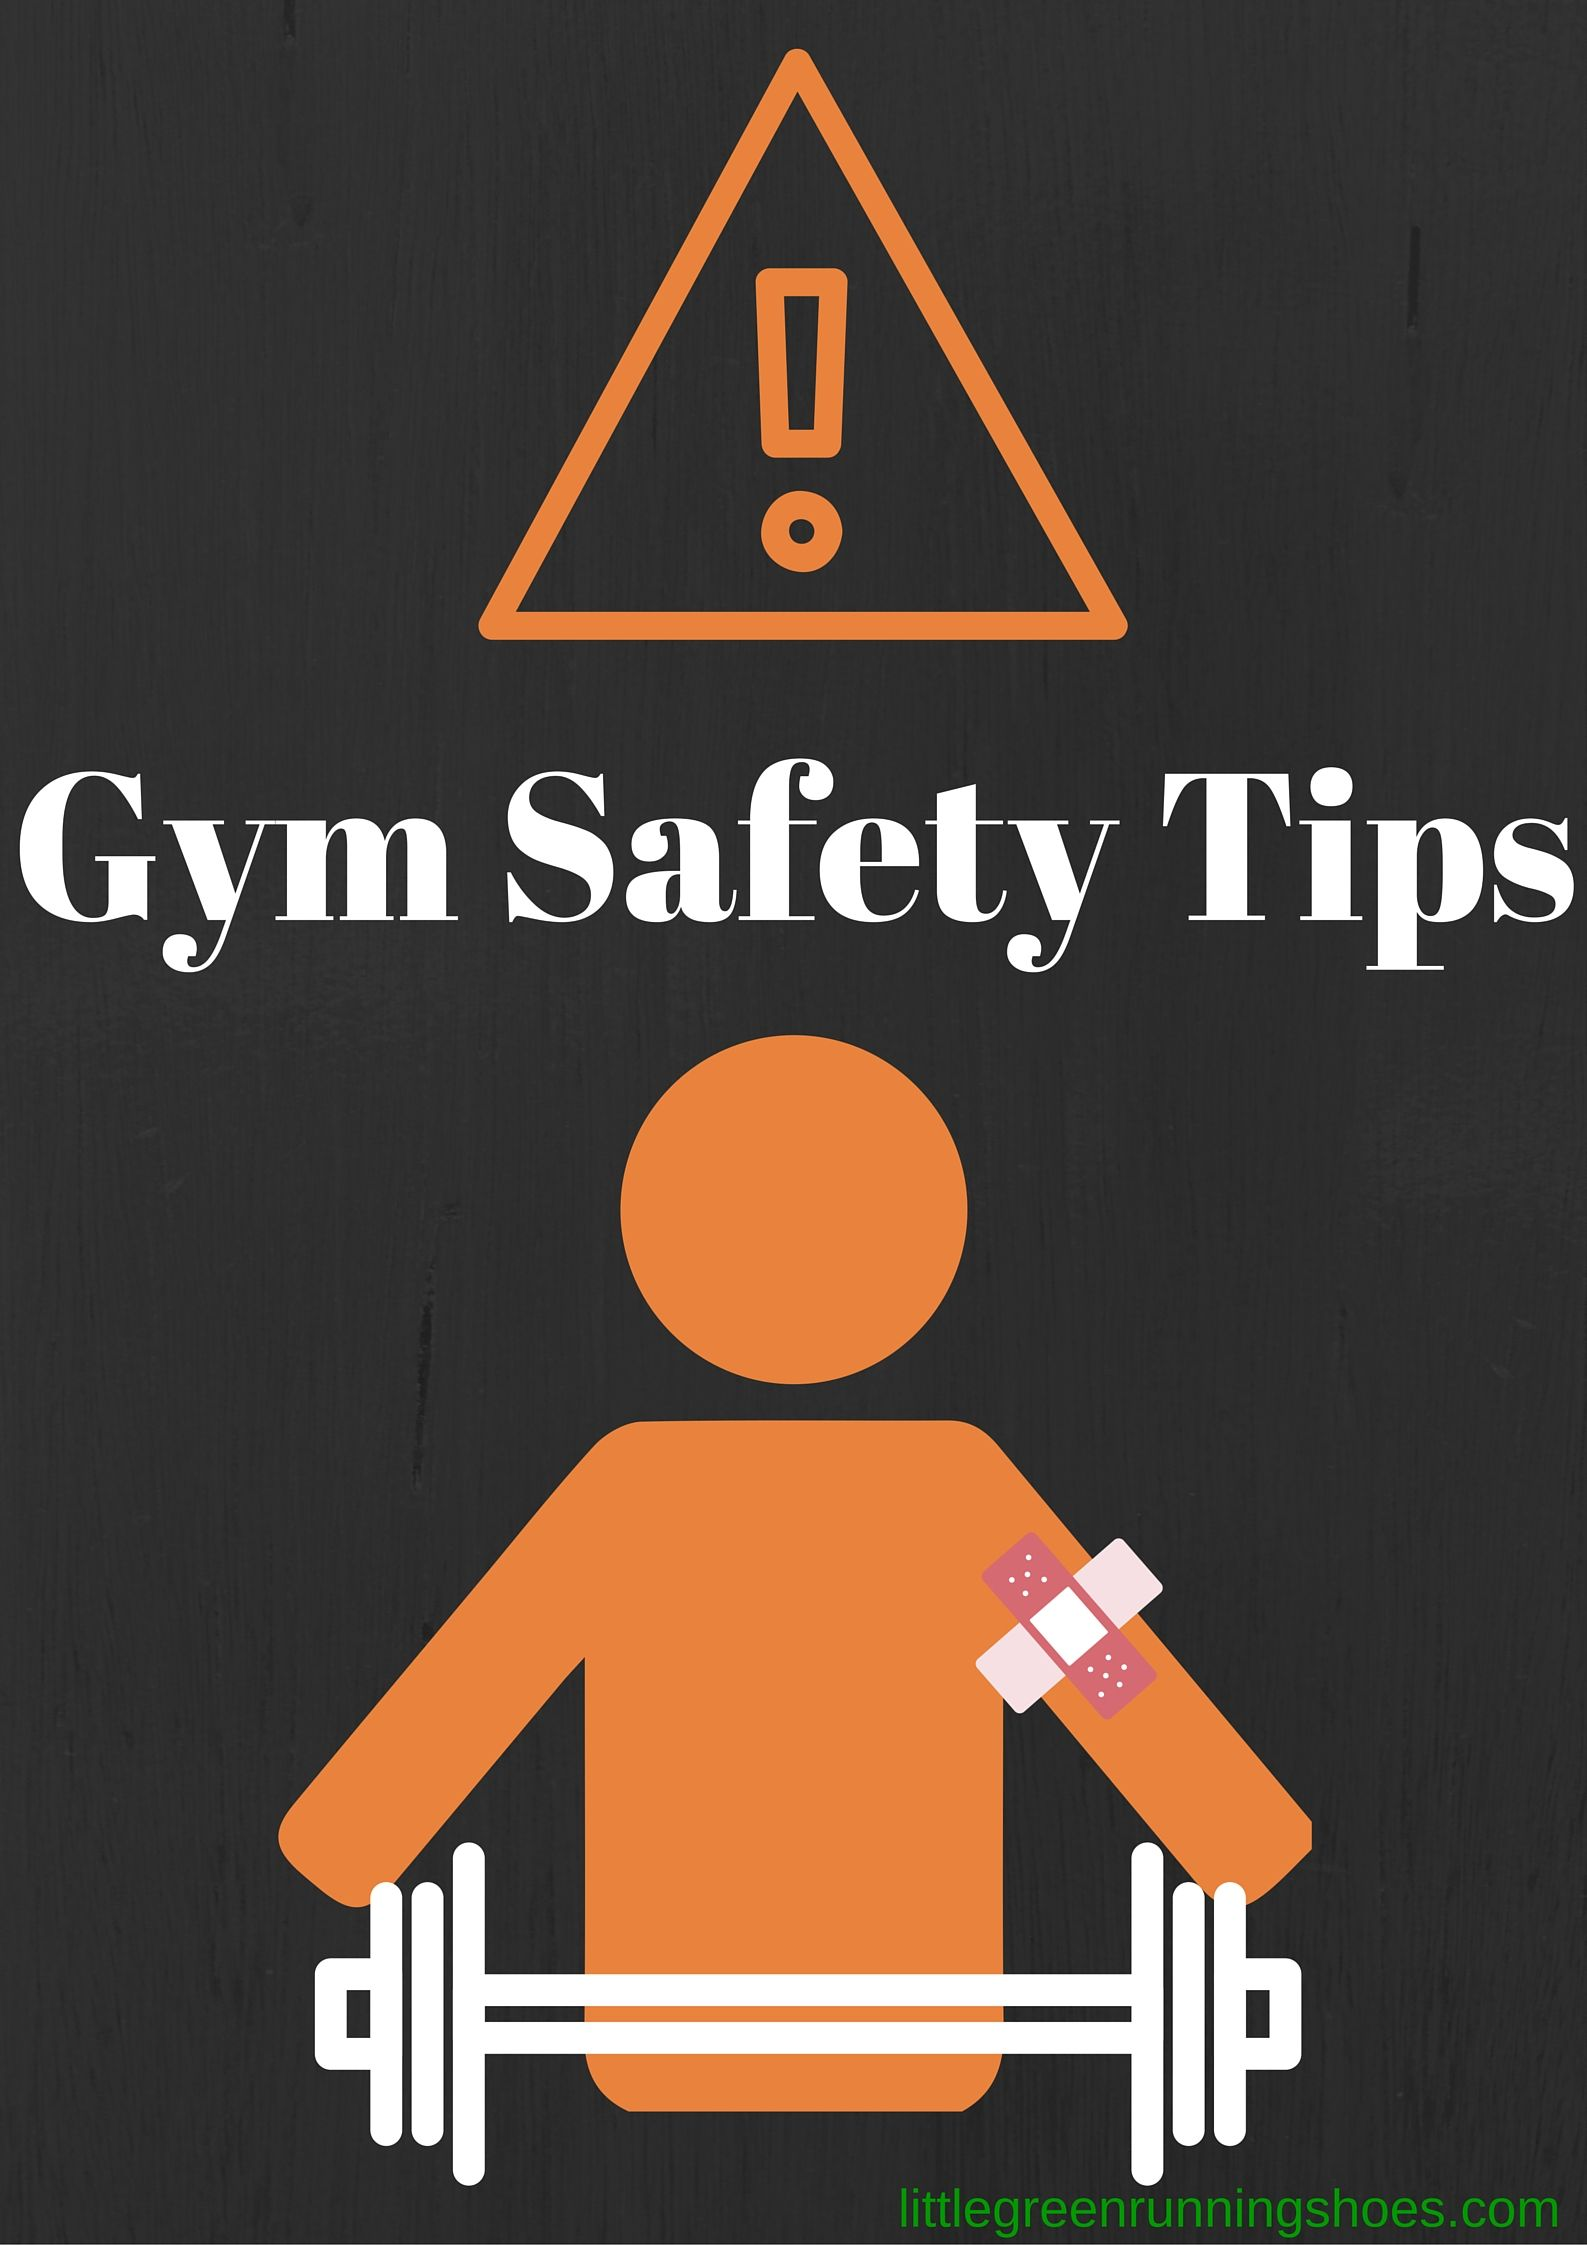 Gym Safety Safety tips, Gym, Tips